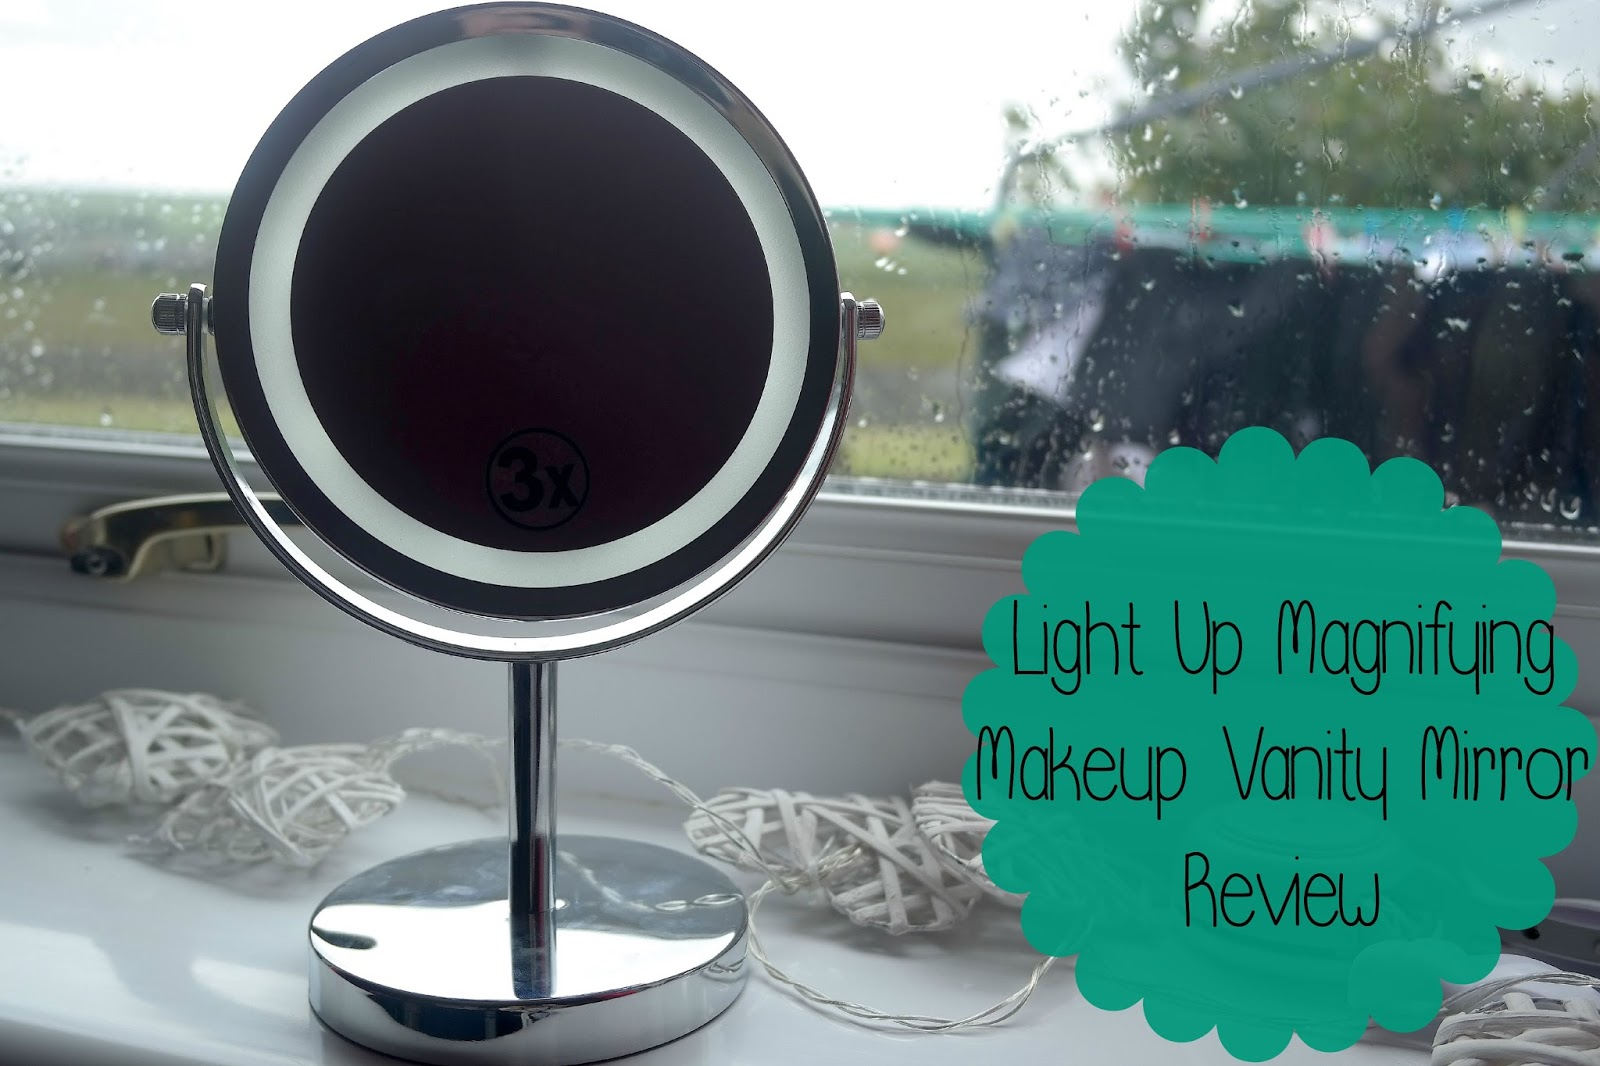 Valuelights Makeup Vanity Mirror Review Jenna Suth